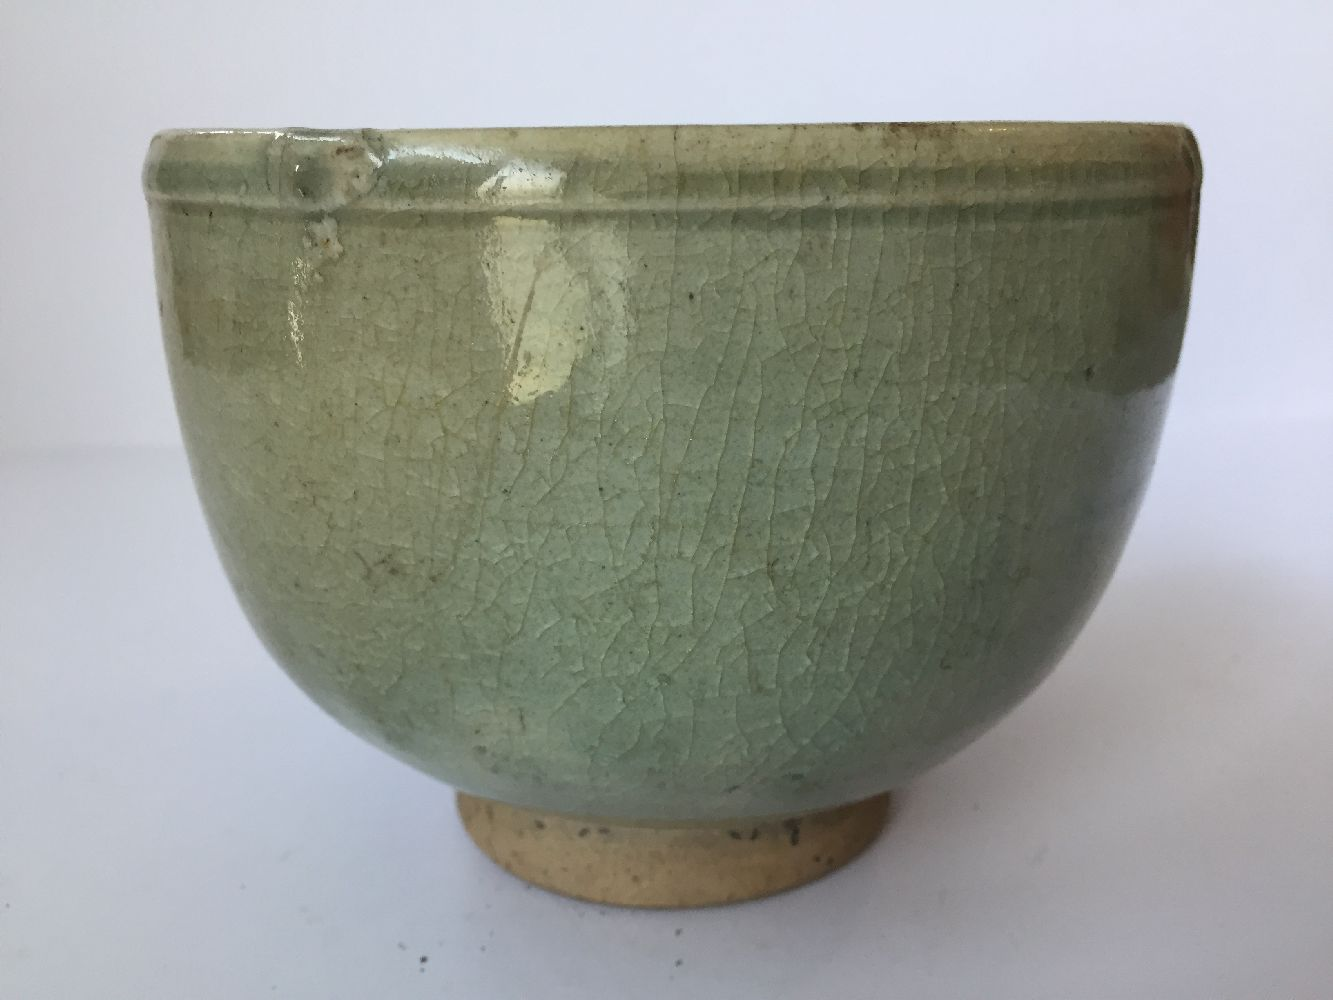 Three Thai Sawankhalok bowls, 15th-16th century, each covered in a celadon glaze, two with fluted - Image 20 of 27